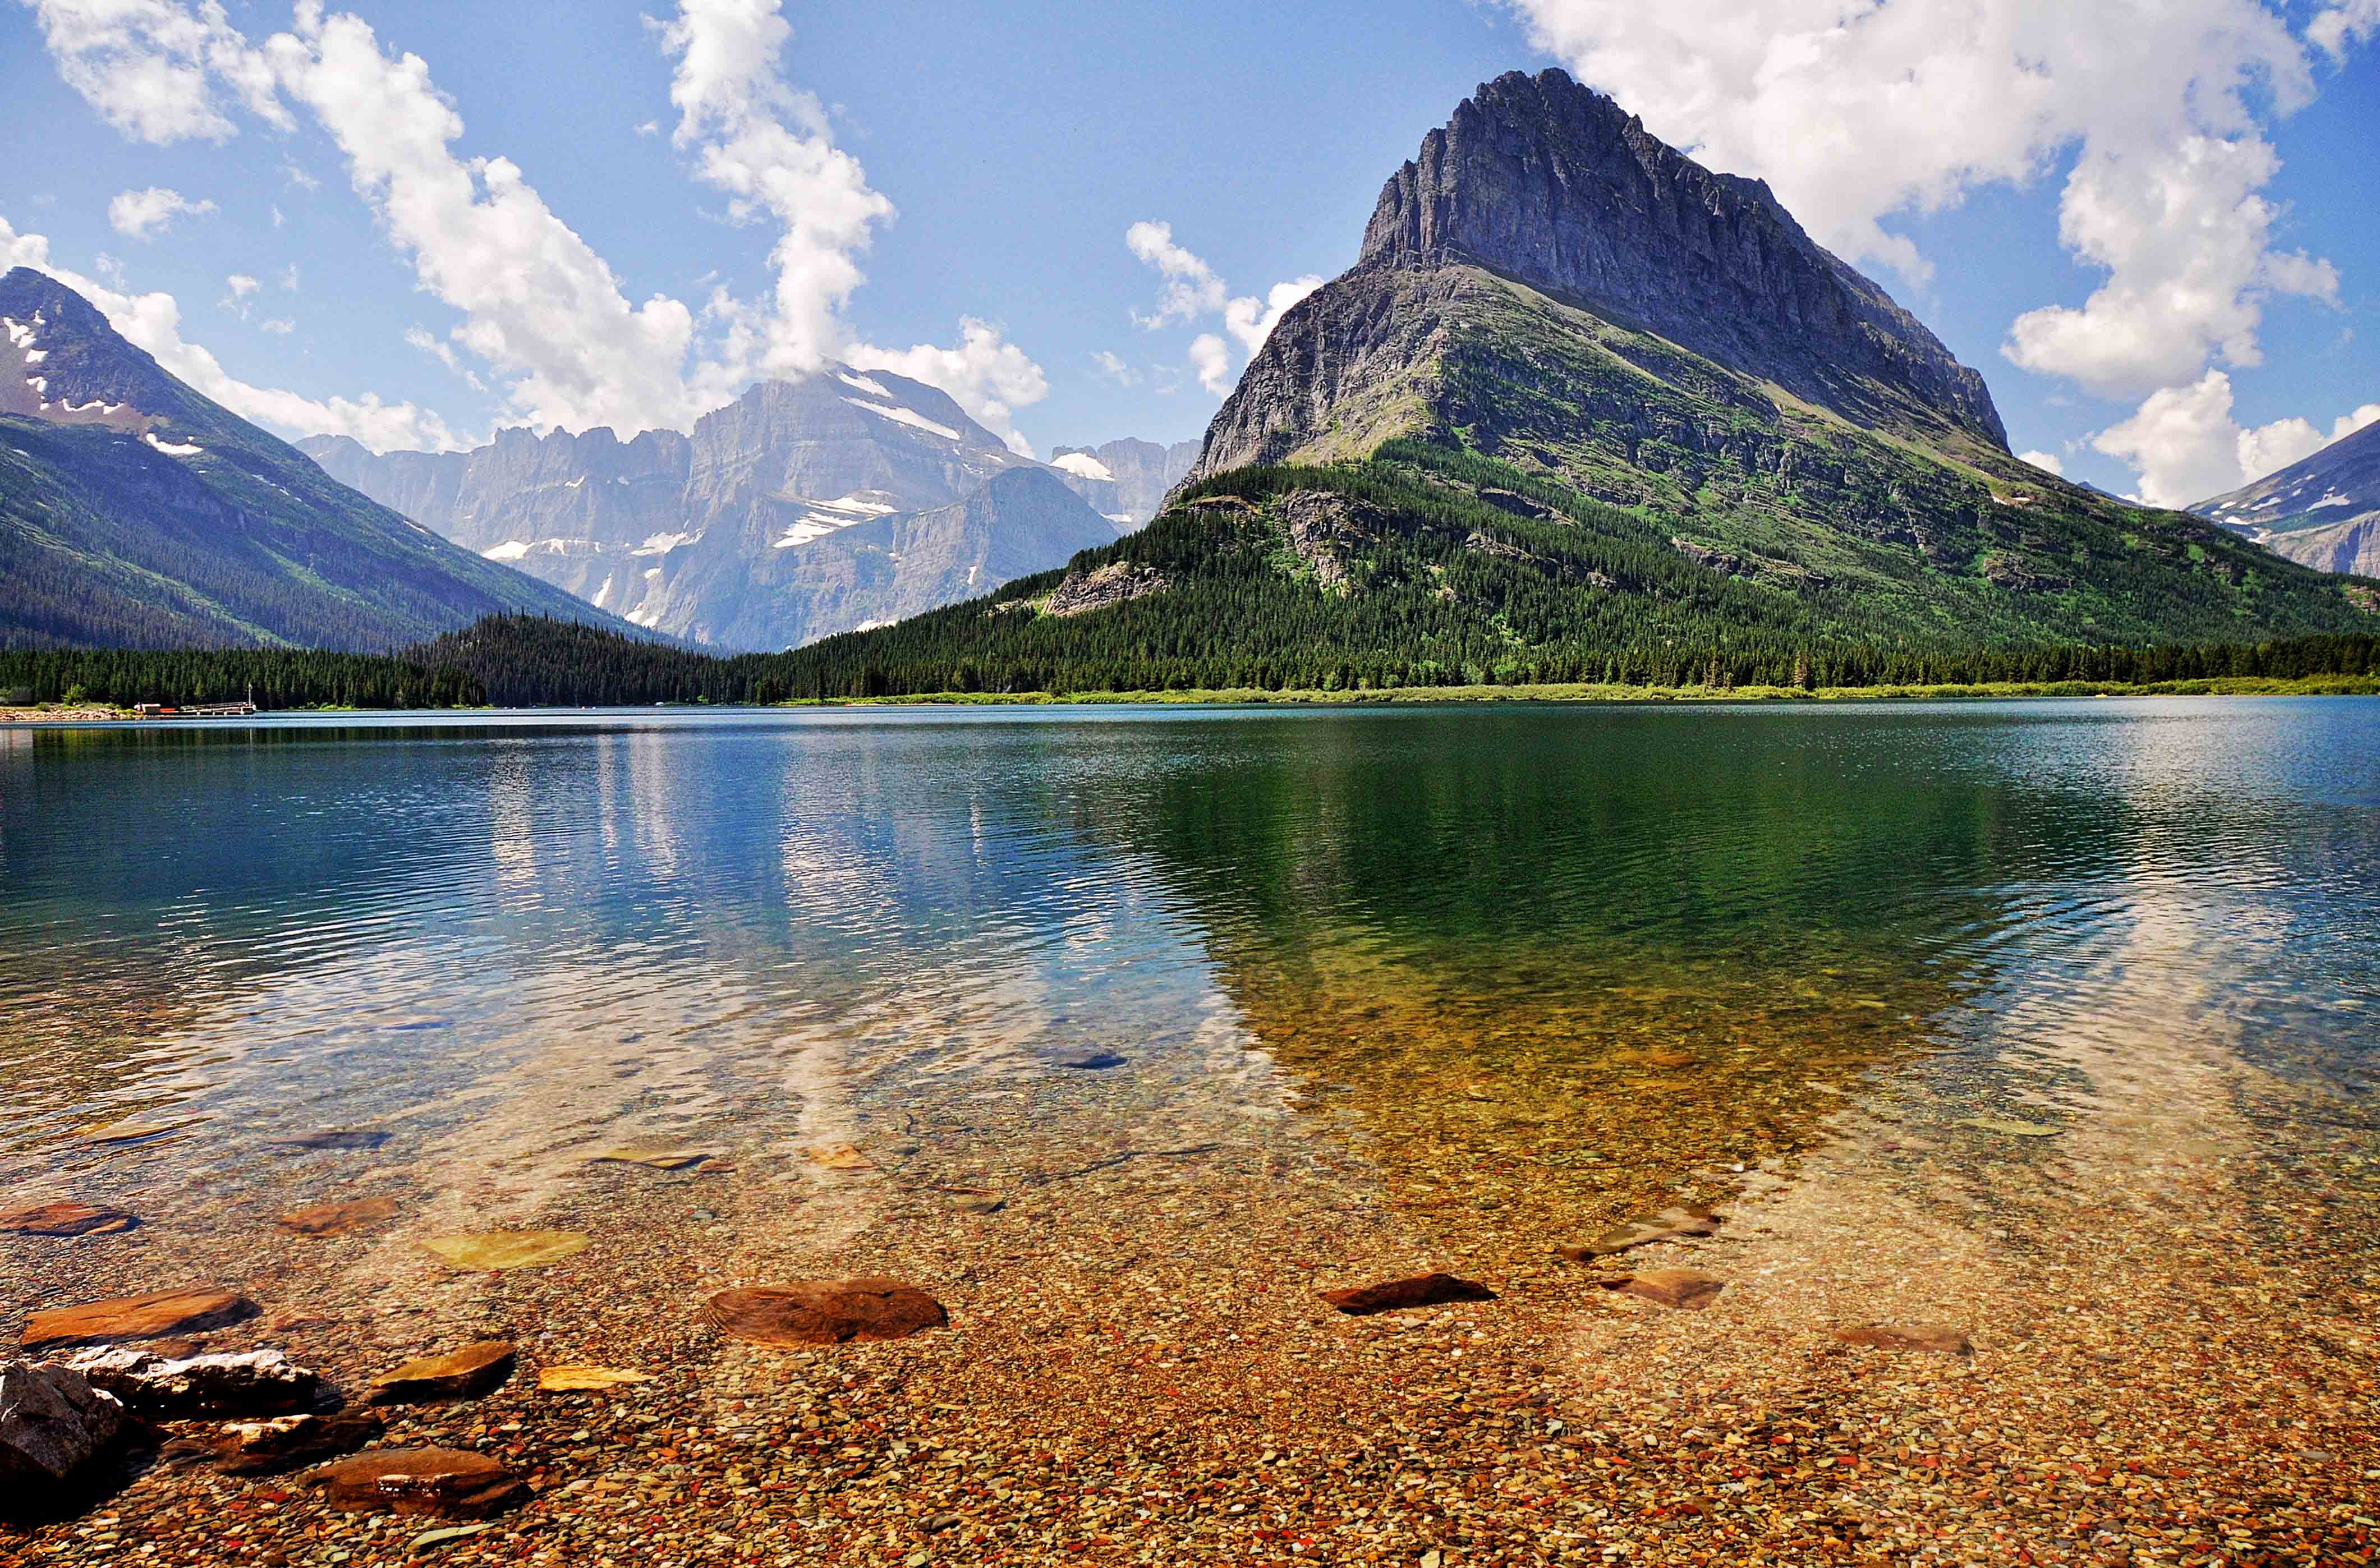 usa map ohio with Montana Lakes Are The Best on Ycmw Page Arizona moreover Physical Map Of Ohio moreover C Athens County Ohio as well XEtx Blackpool Pleasure Beach Blackpool England additionally Take Maryland Fall Foliage Trip.